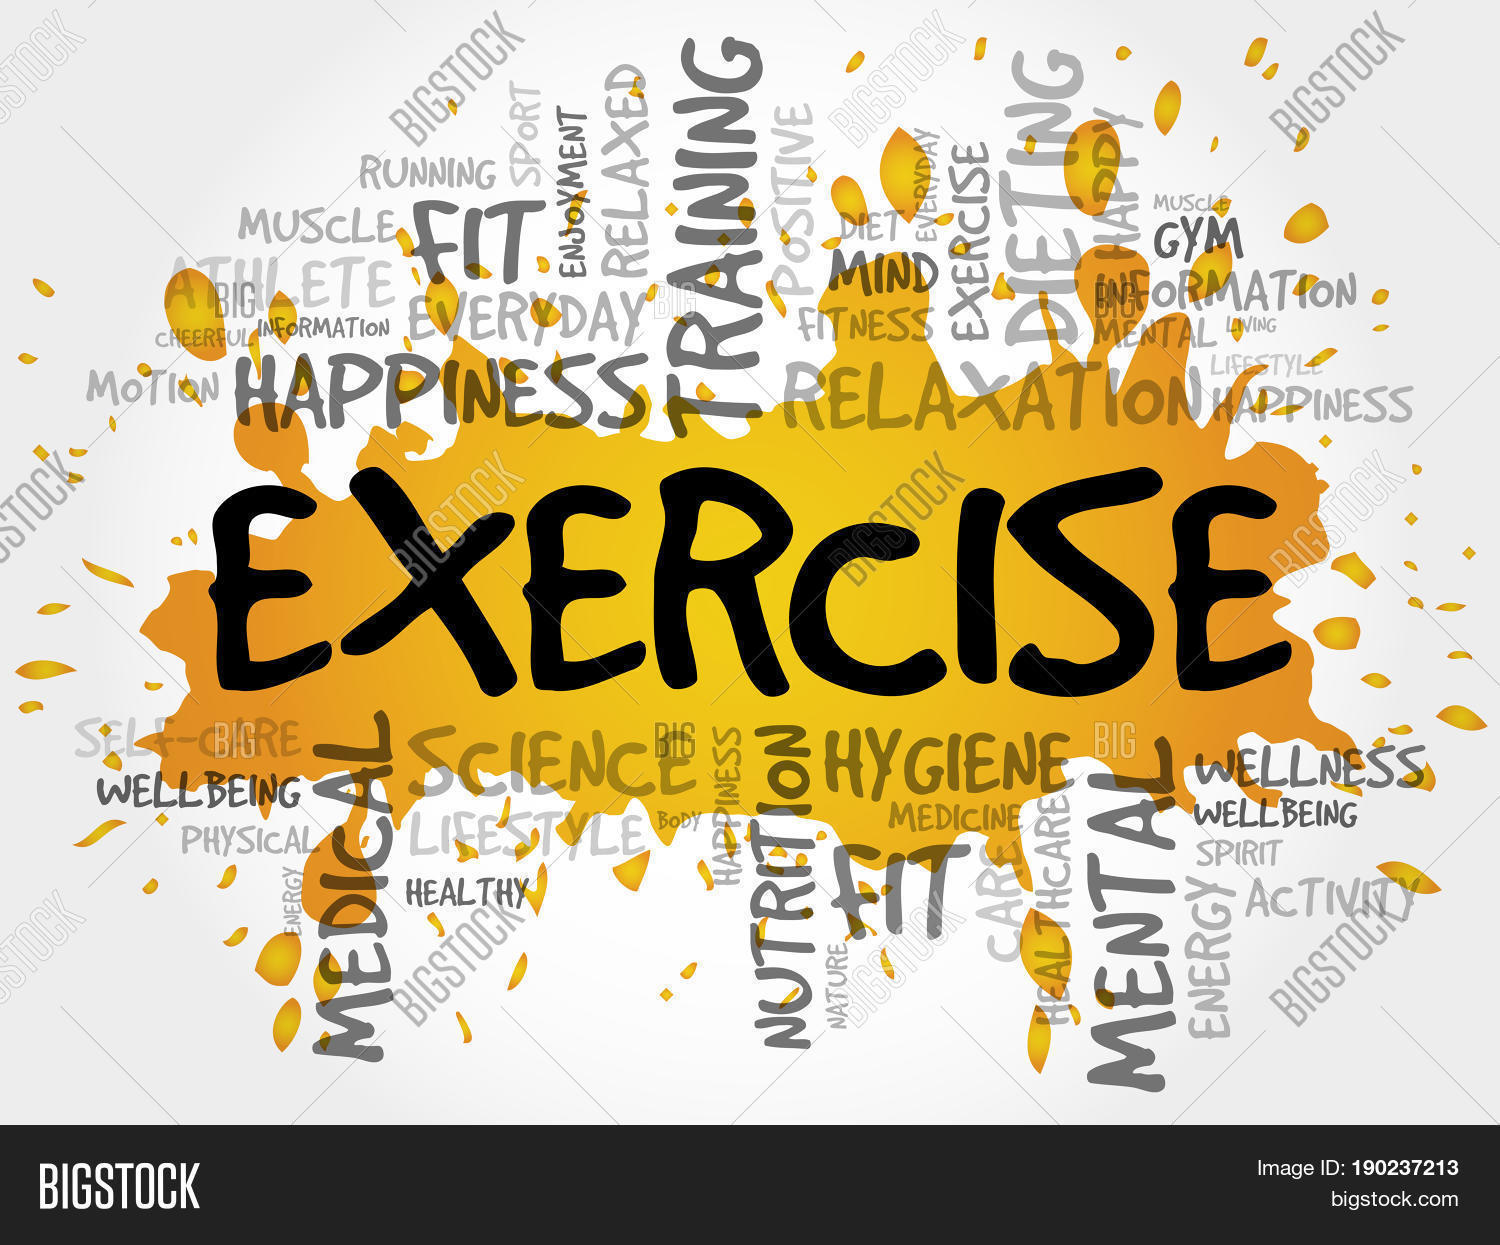 Exercise Word Cloud Image Photo Free Trial Bigstock